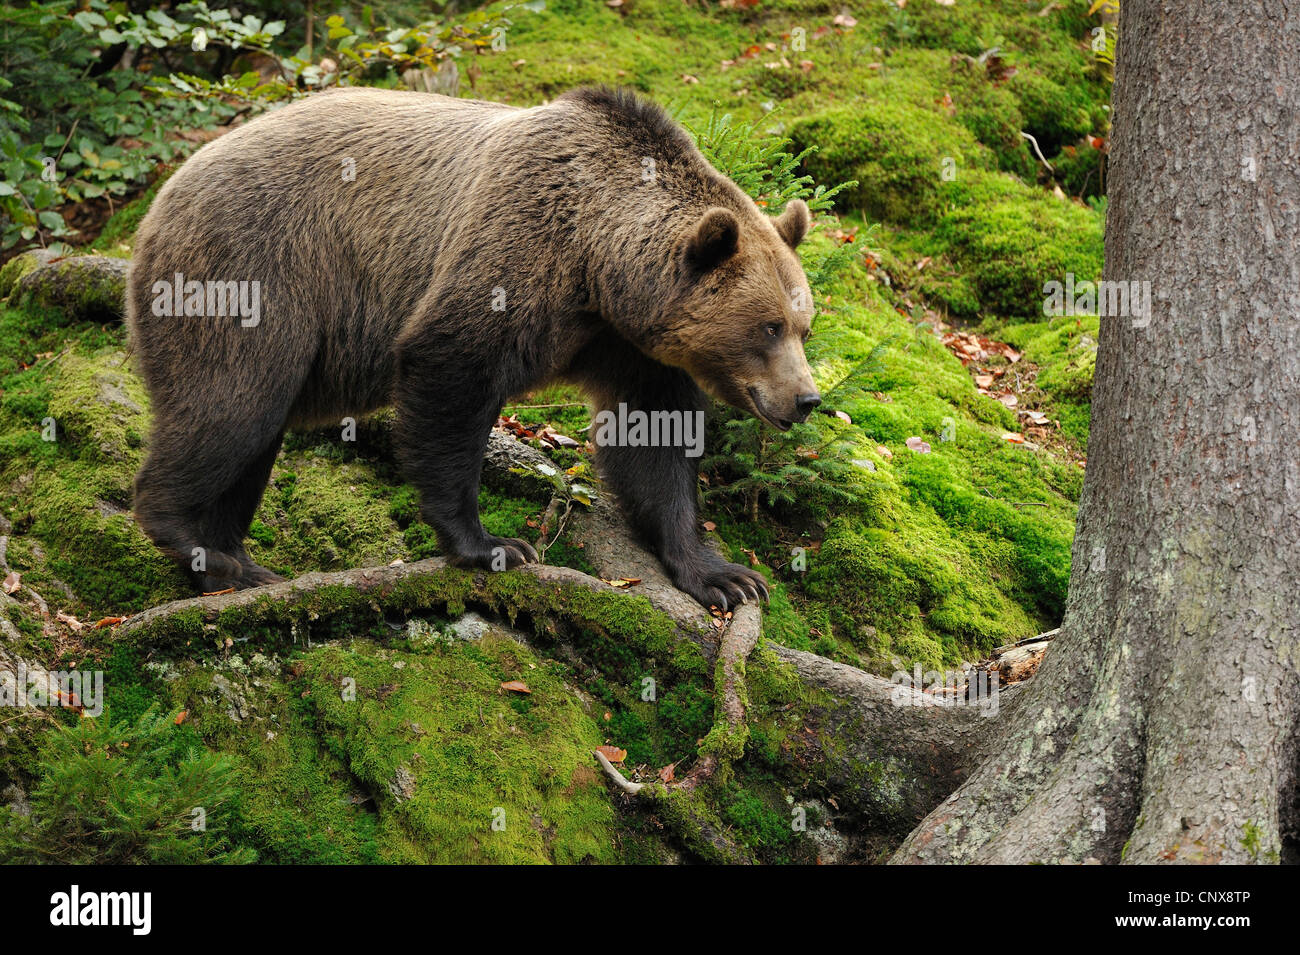 brown bear (Ursus arctos), on a tree root, Germany, Bavaria, Bavarian Forest National Park - Stock Image